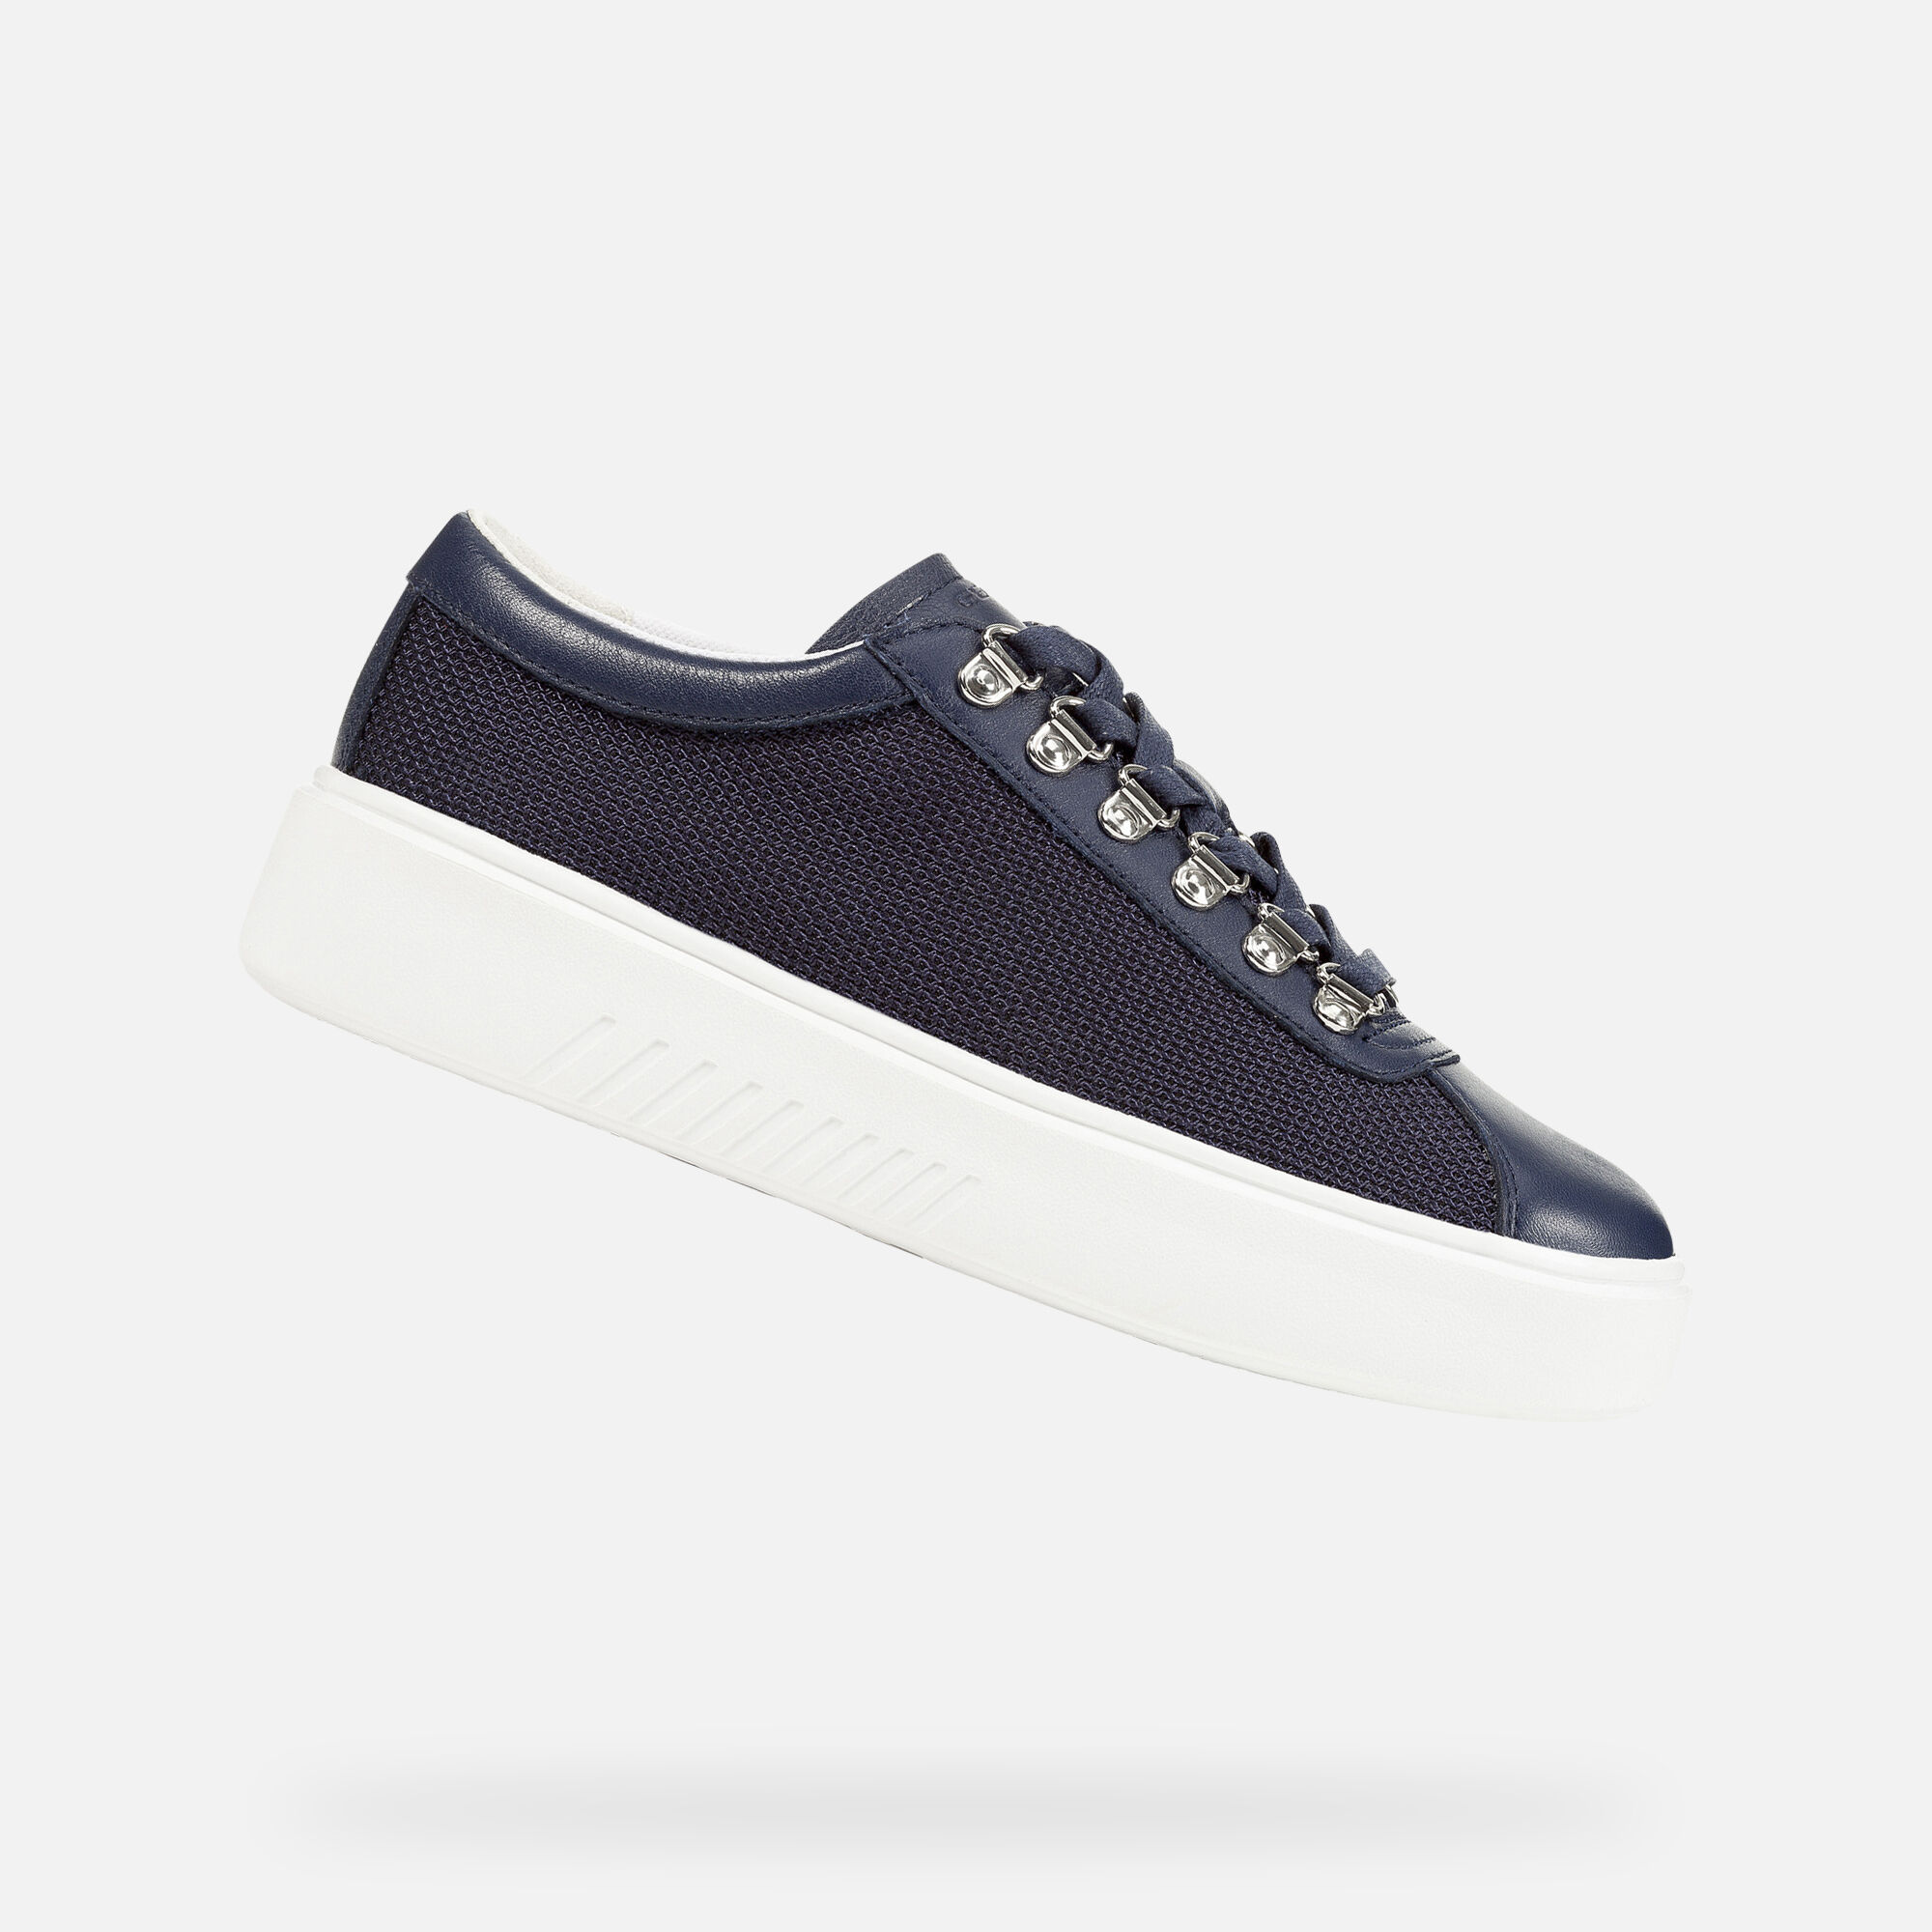 Geox D NHENBUS: Blue Woman Sneakers   Geox SS19